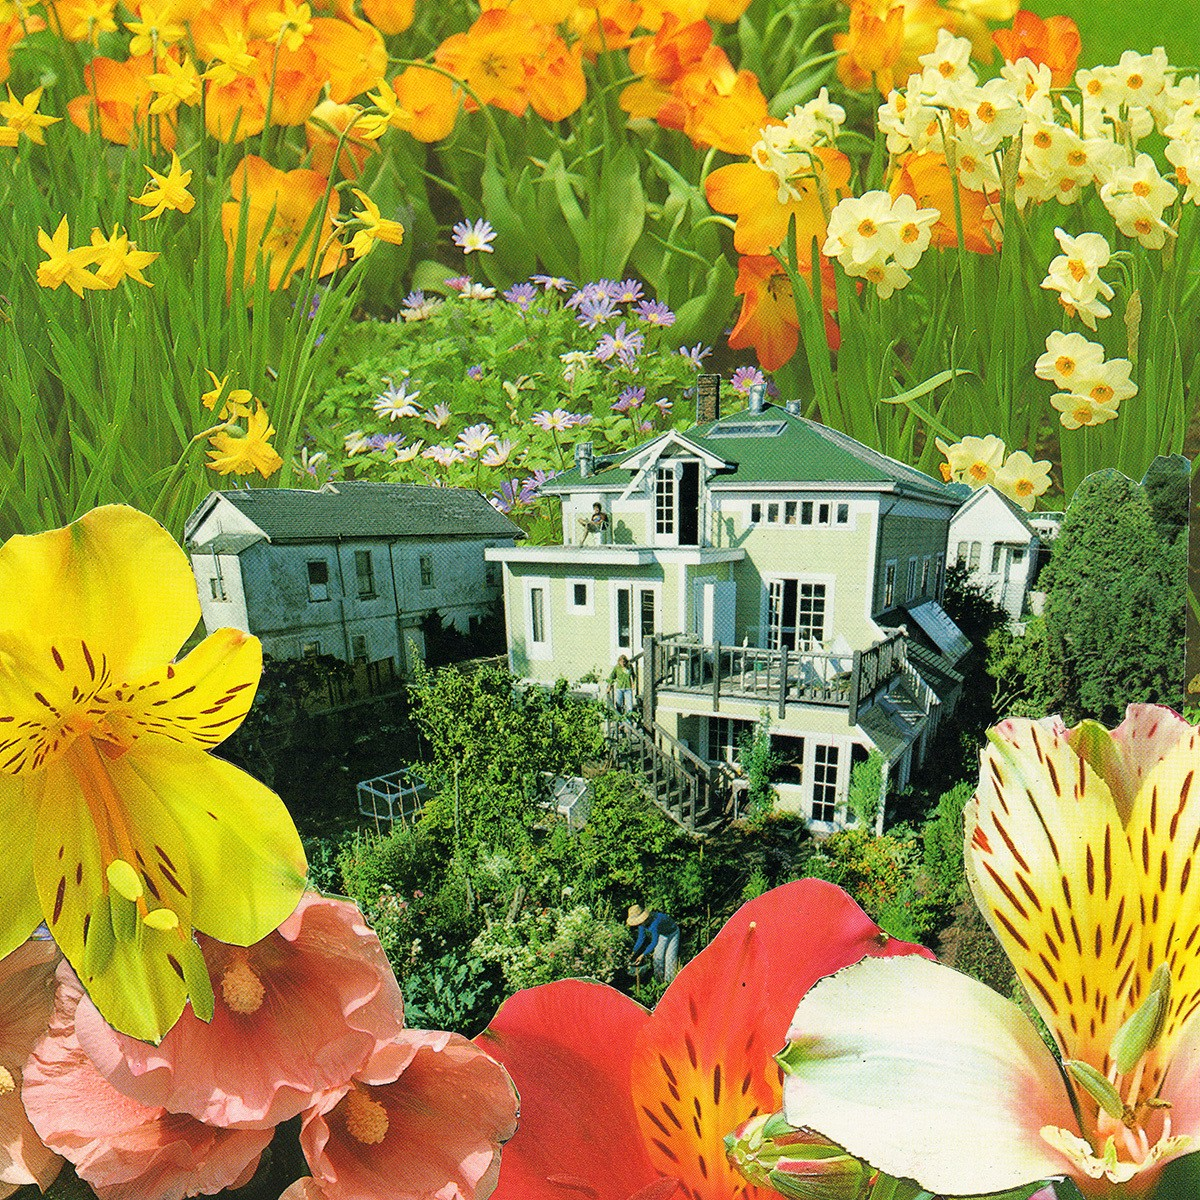 a collage depicting a tiny house surrounding by tall colourful flowers